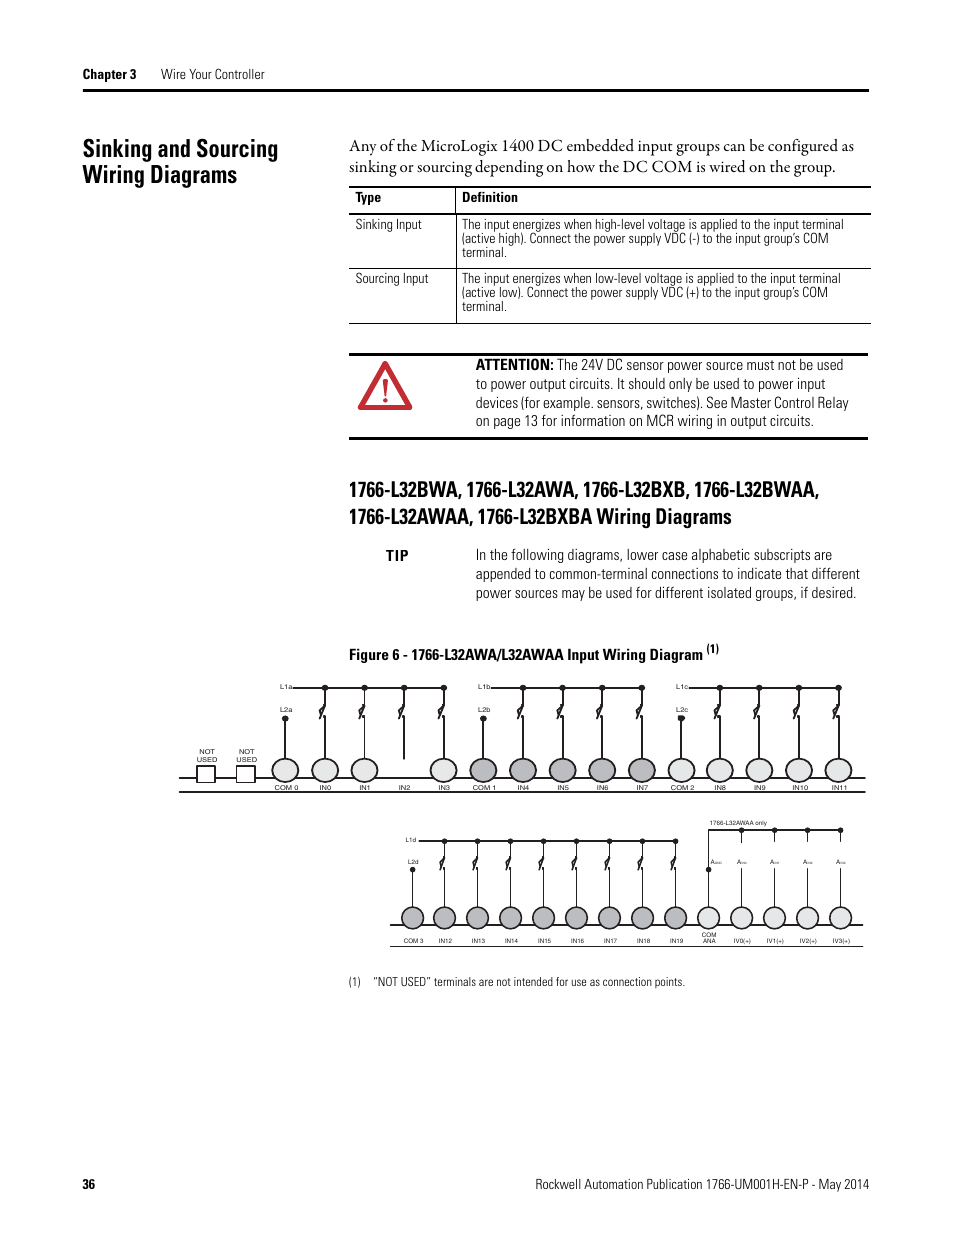 medium resolution of sinking and sourcing wiring diagrams rockwell automation 1766 lxxxx micrologix 1400 programmable controllers user manual user manual page 50 406